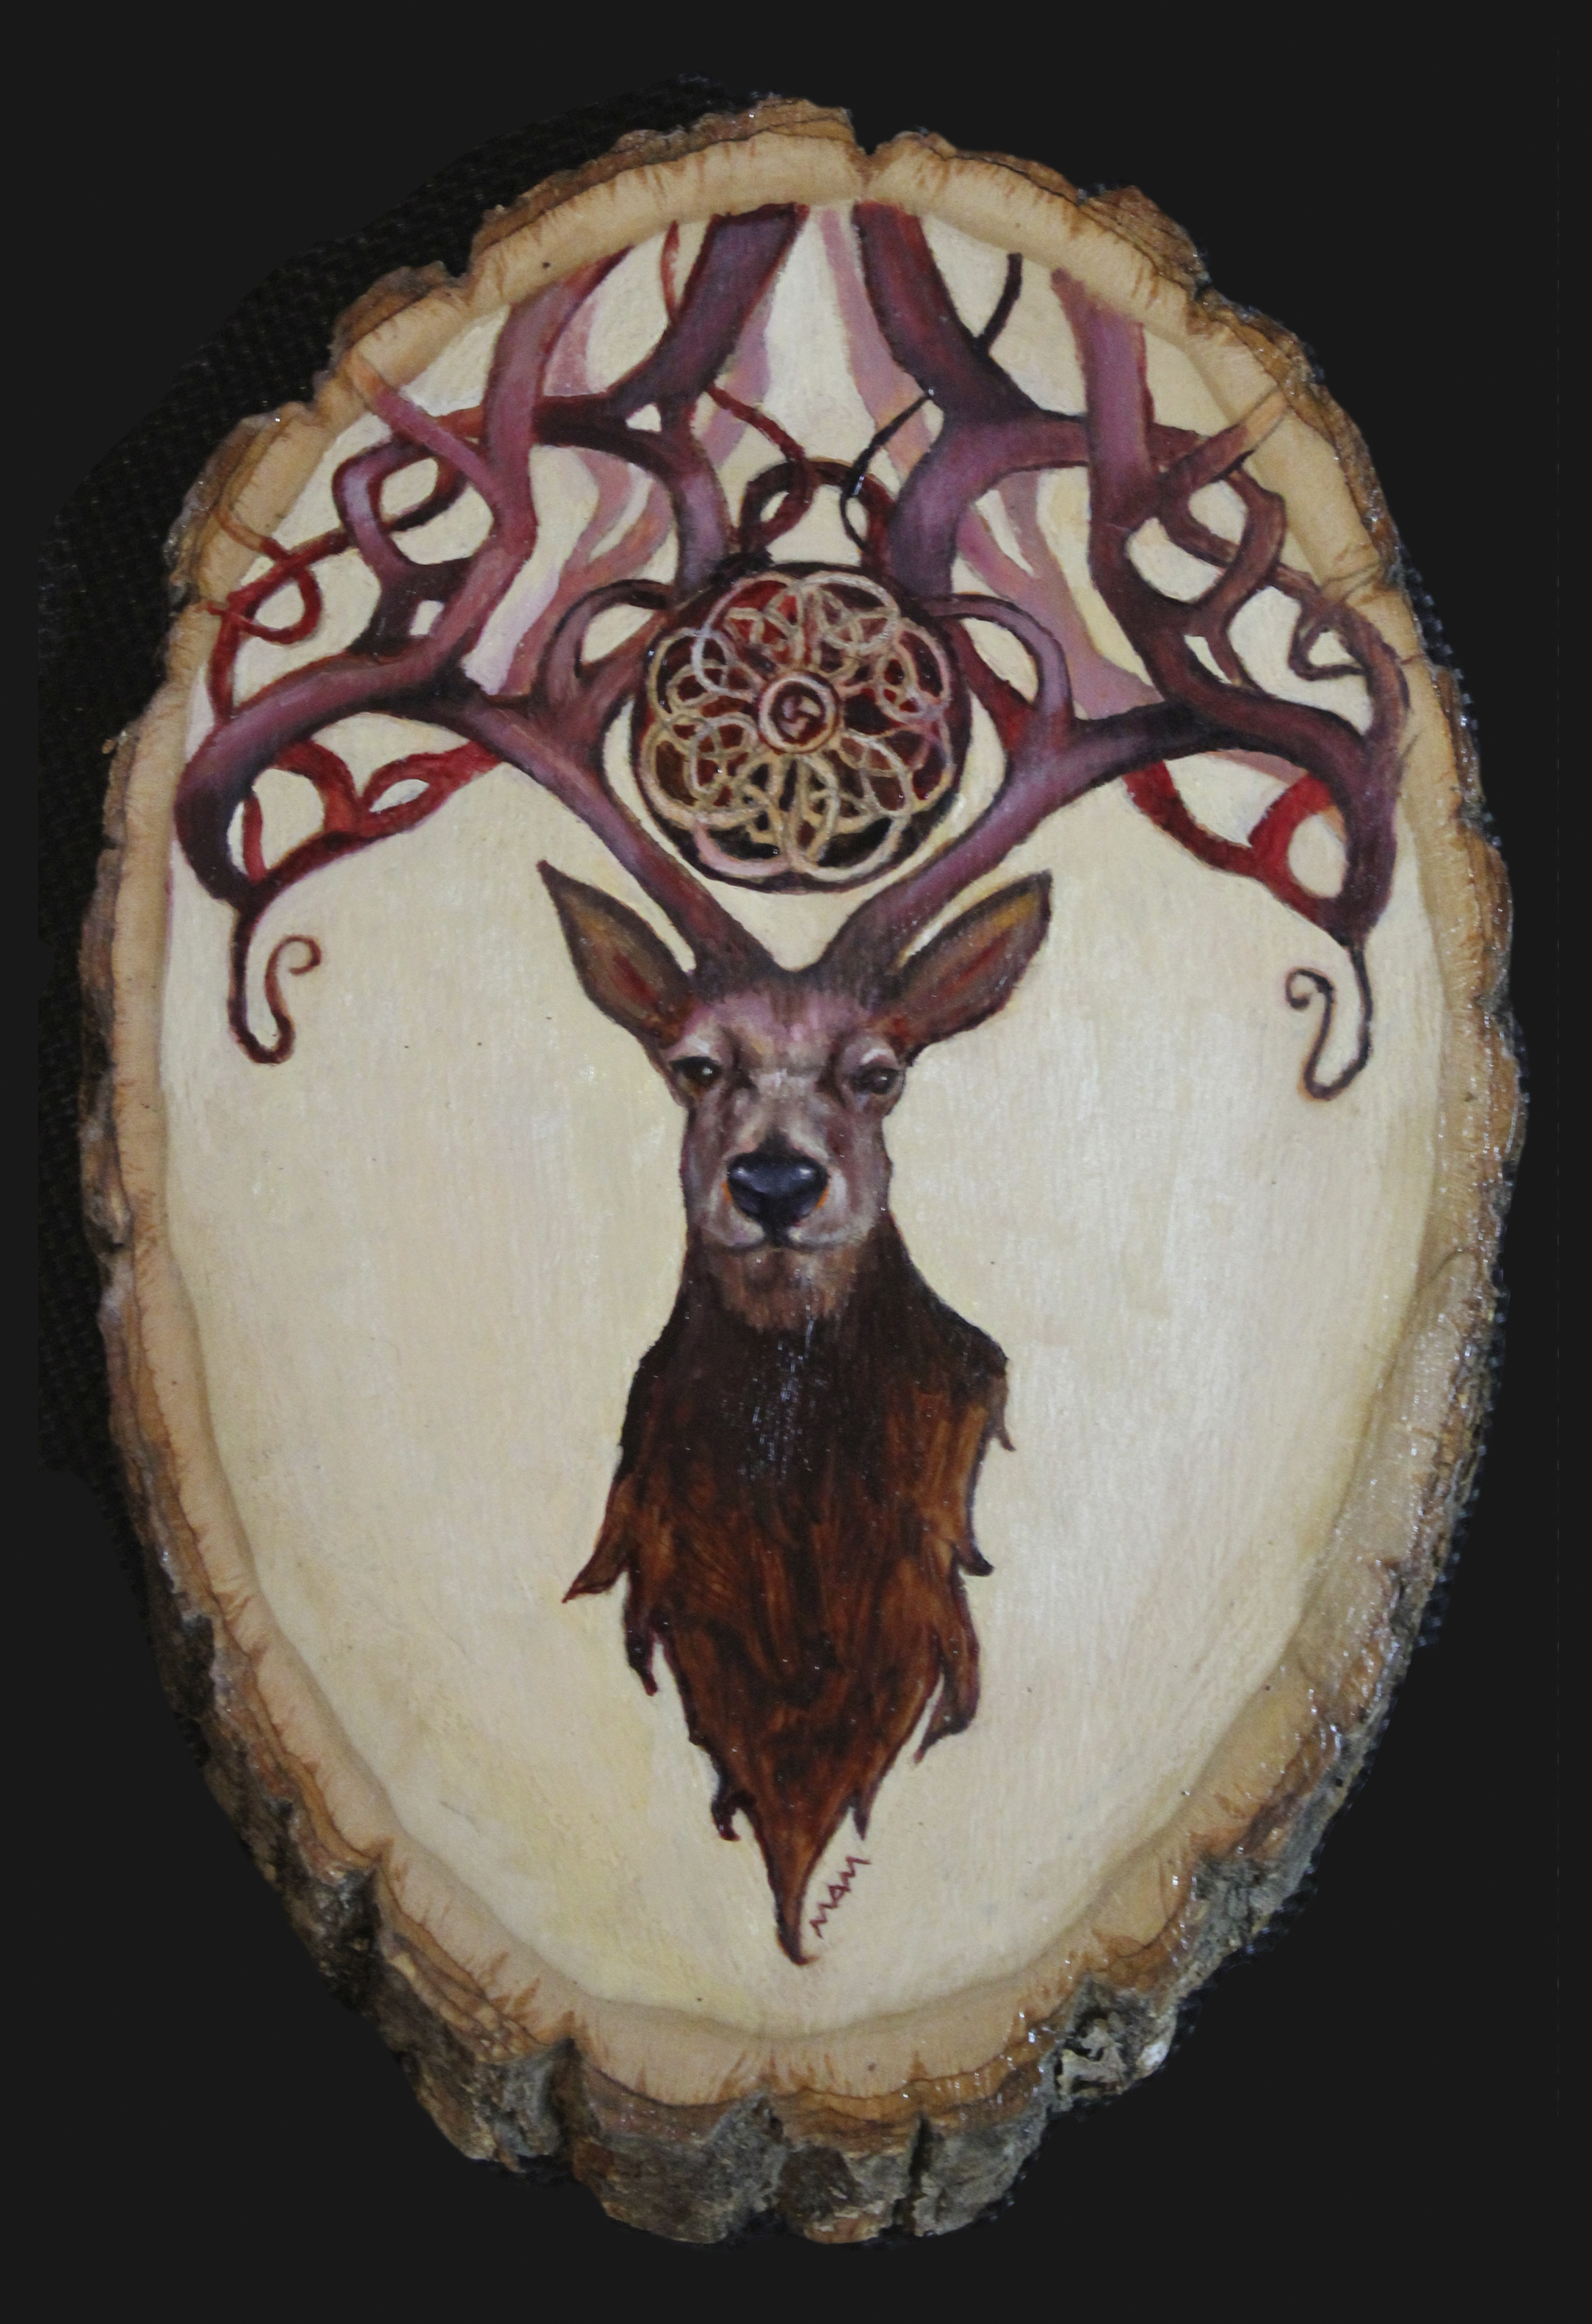 Cernunnos-In Private Collection